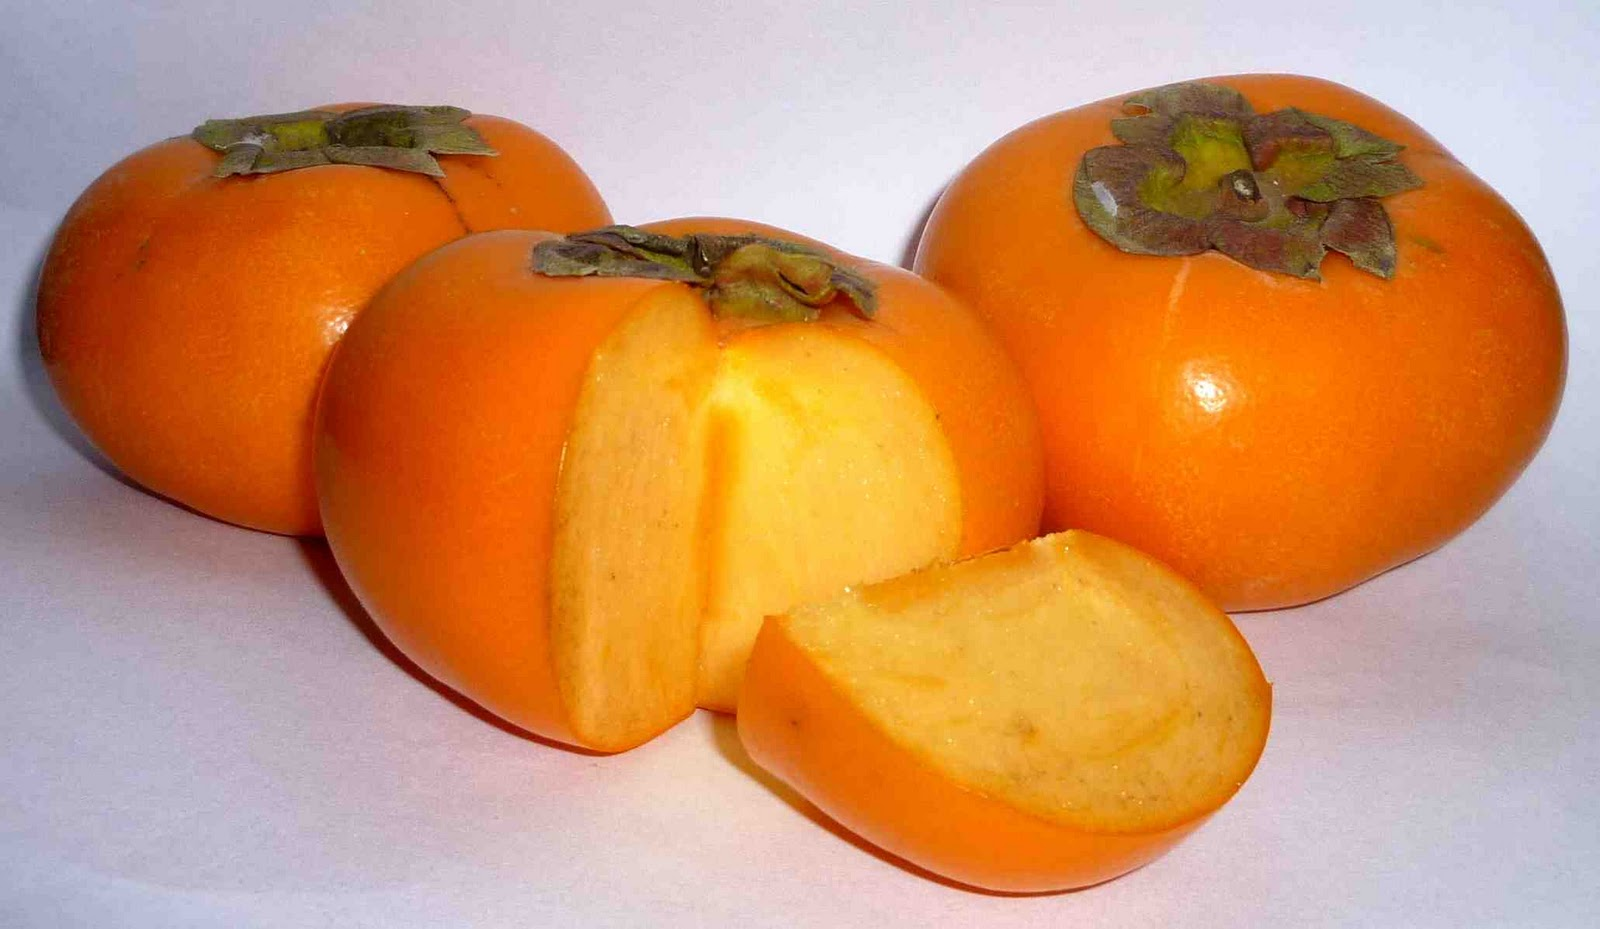 Hachiya Japanese Persimmon Trees For Sale | The Tree Center™